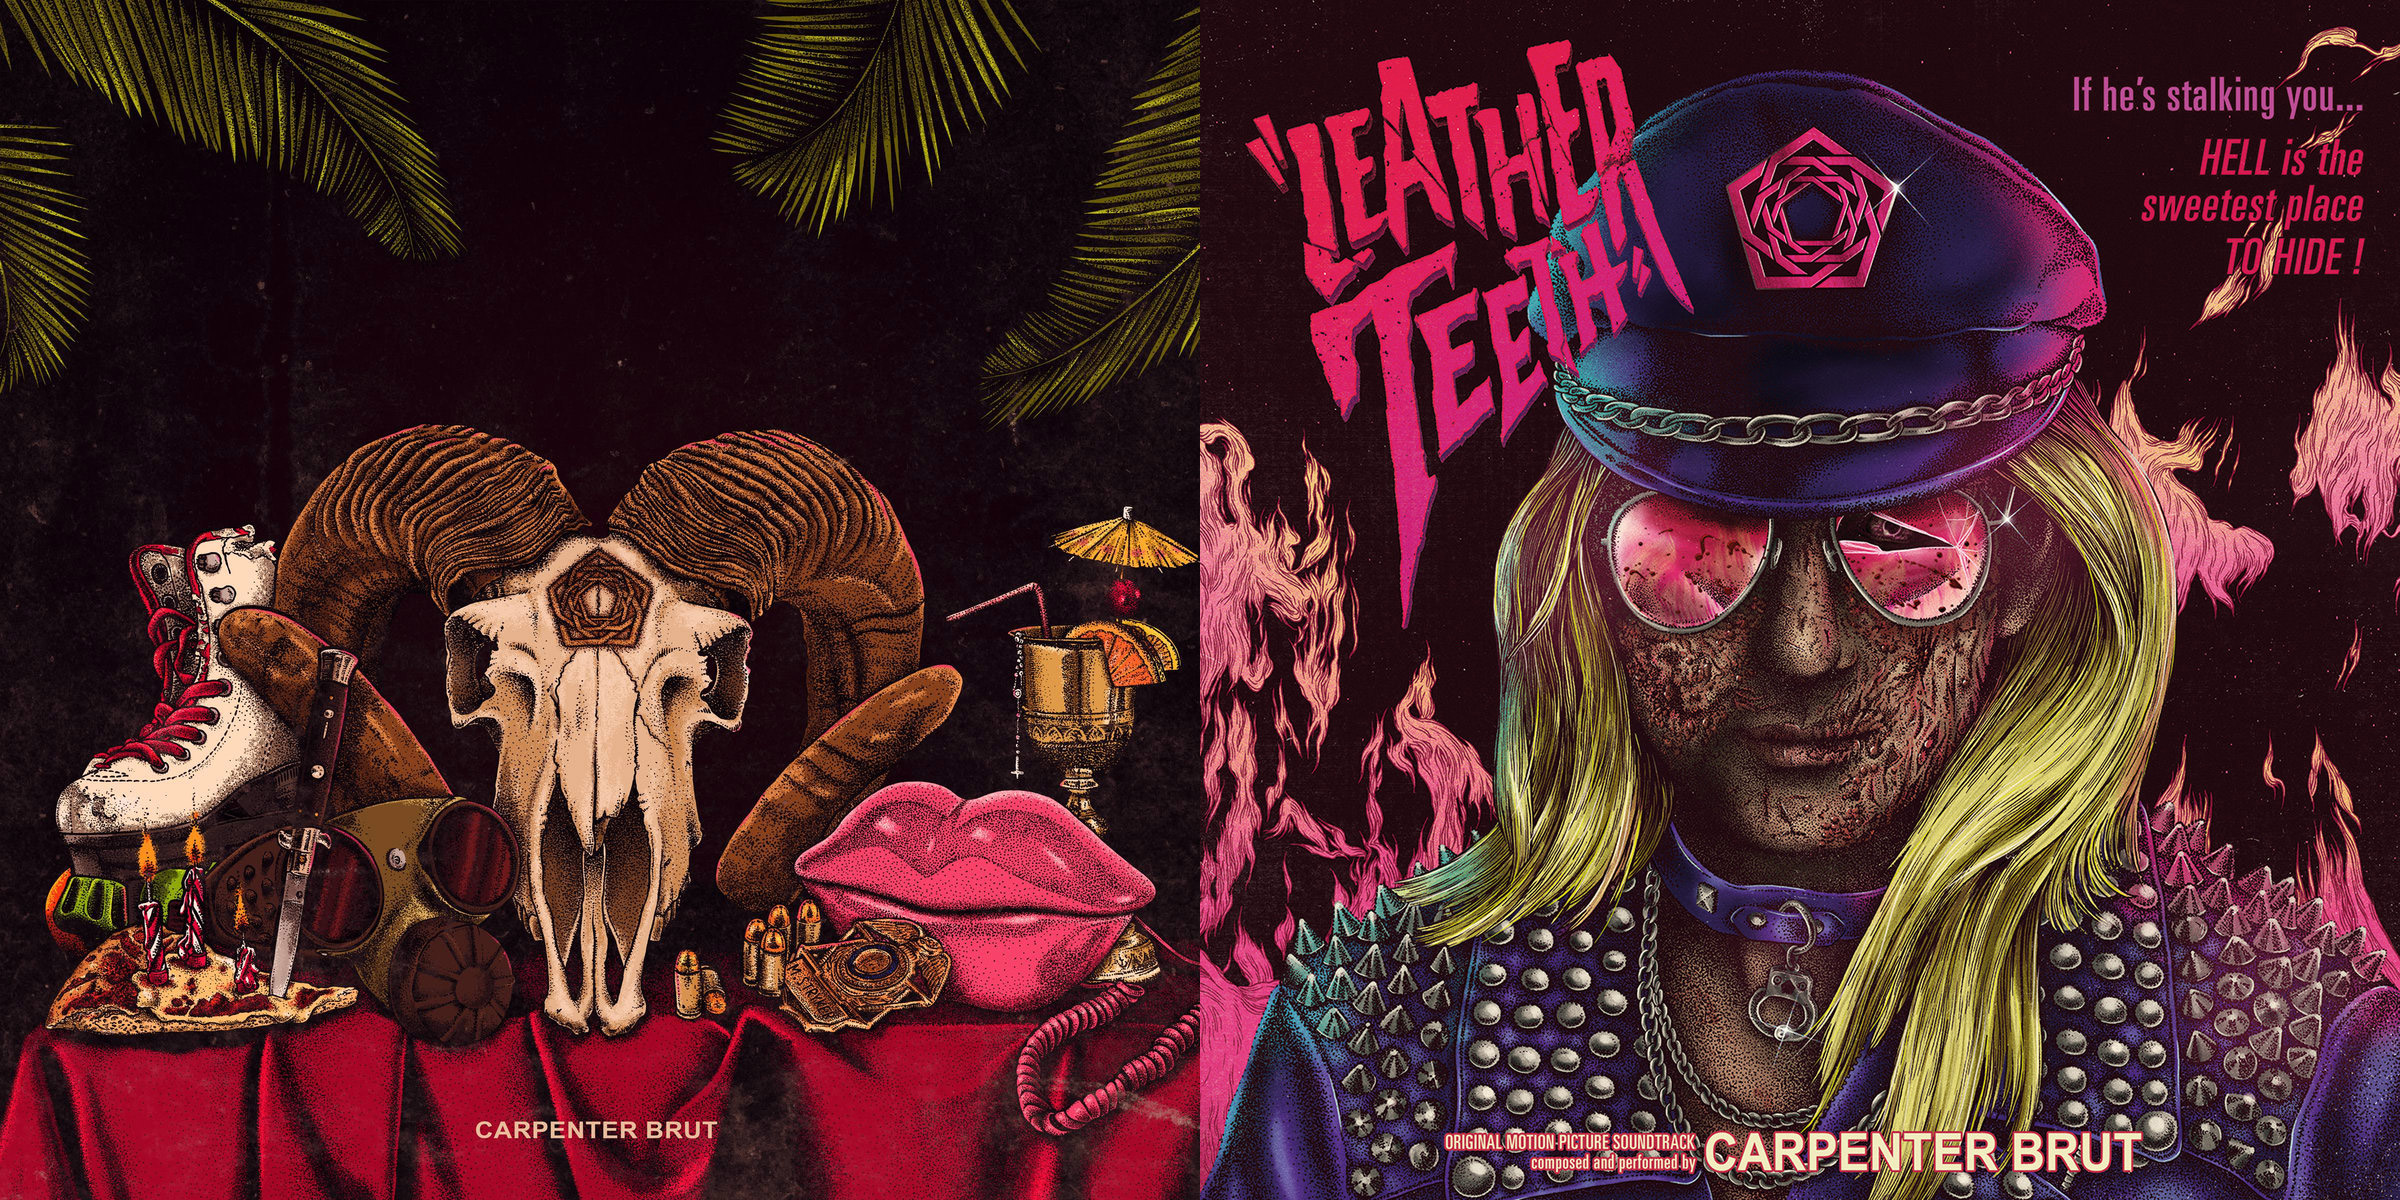 Carpenter Brut: Leather Teeth / Trilogy